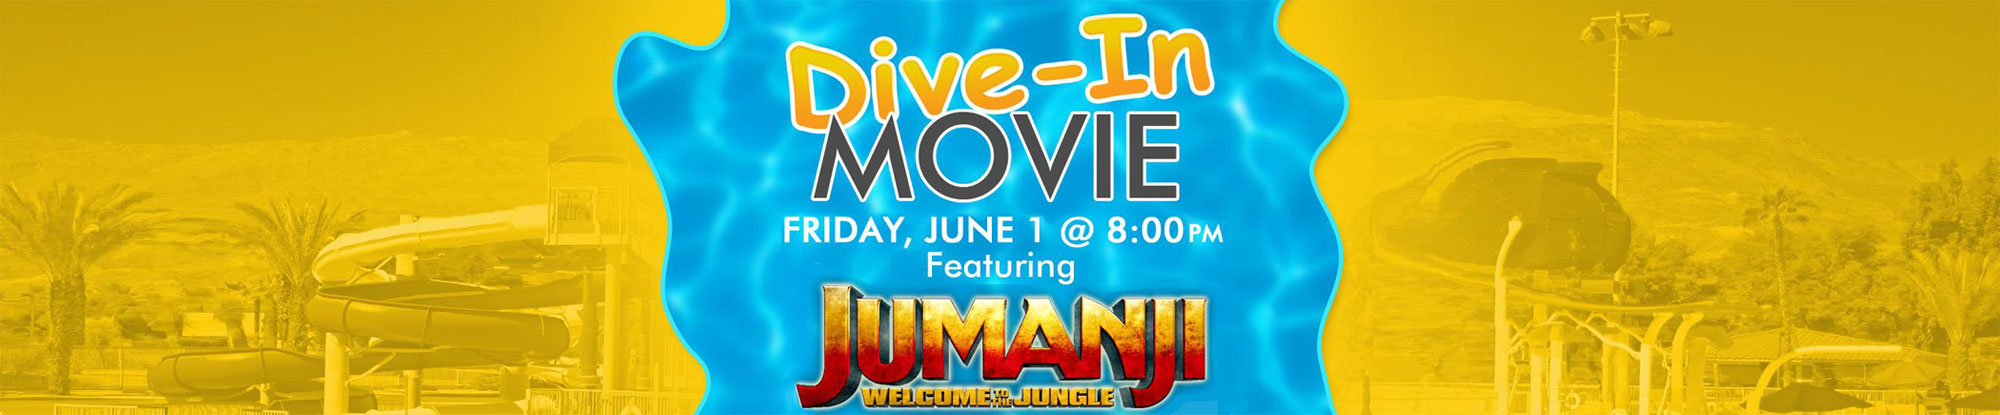 Dive-in Movie: Jumanji